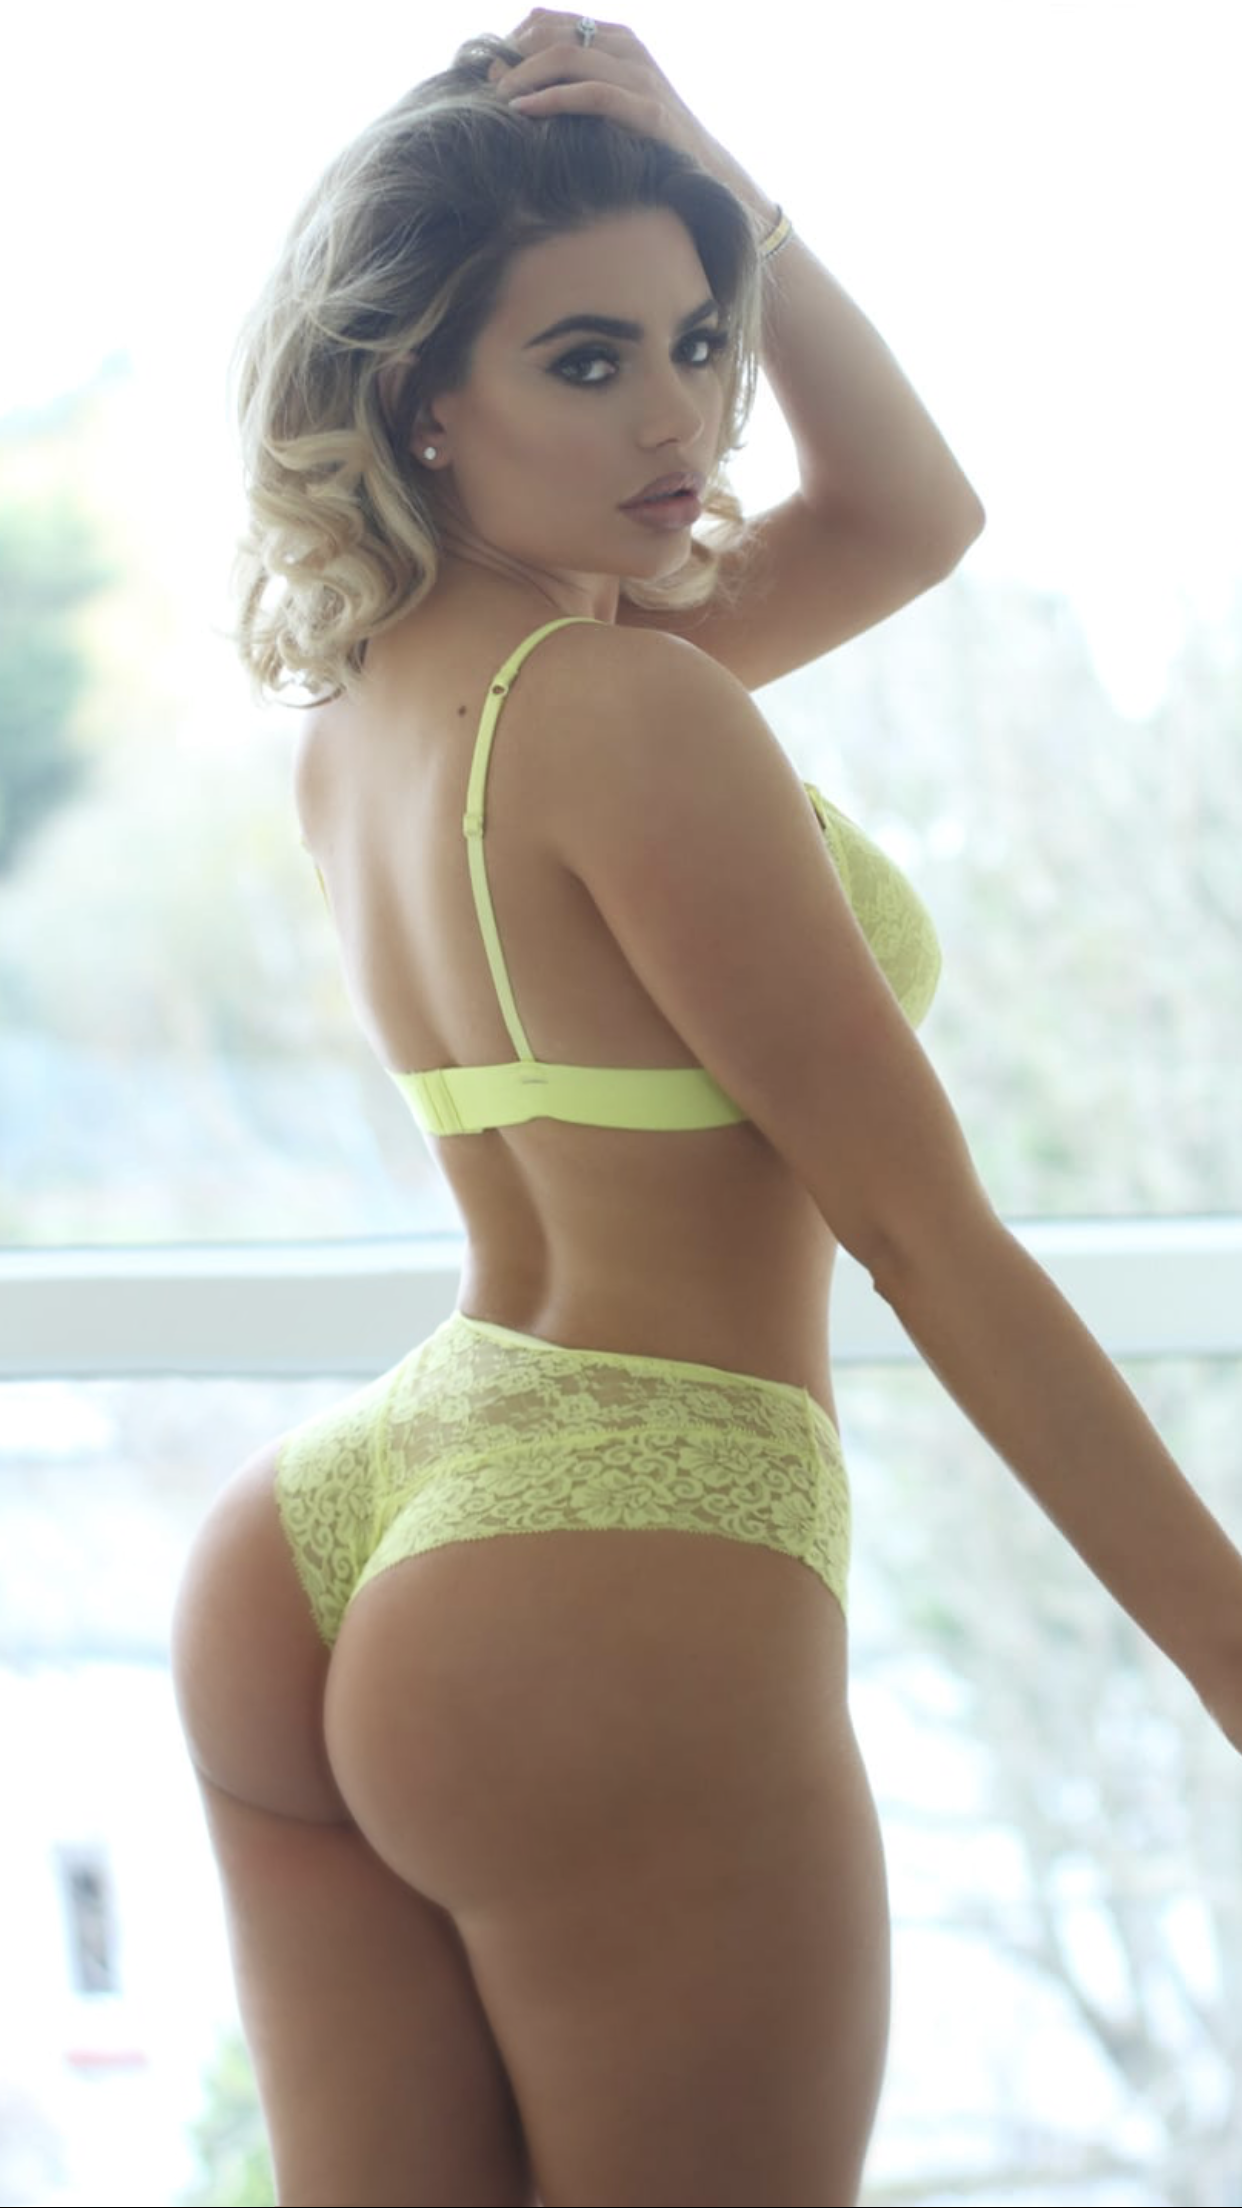 Perfect Ass Hot Babe In Lingerie Megan Barton Hanson - Megan Barton Hanson Nude Big Tits OnlyFans Leaked Video